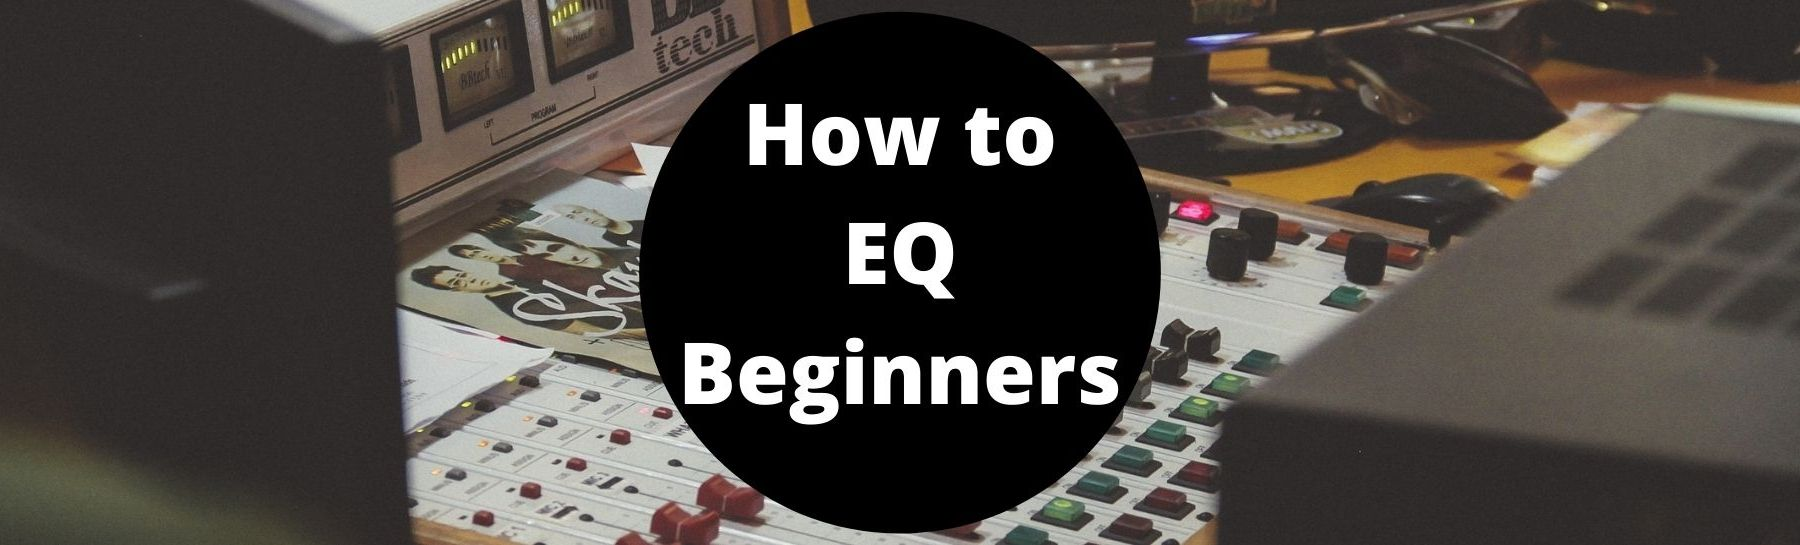 how to eq beginner